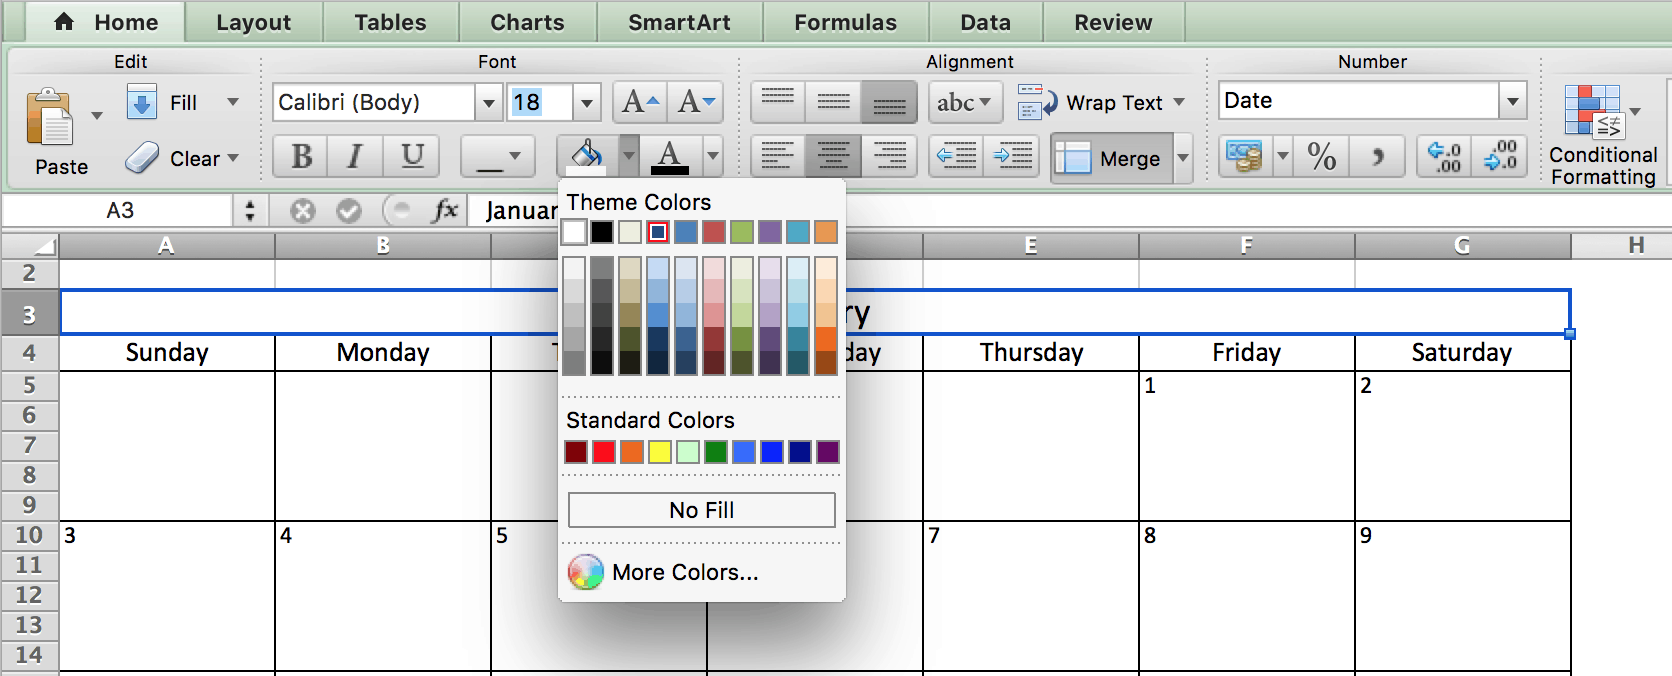 Ediblewildsus  Outstanding Make A  Calendar In Excel Includes Free Template With Inspiring Choosing Colors  Calendar In Excel With Lovely How To Share An Excel Spreadsheet Also Rept Excel In Addition Bubble Graph Excel And Solver In Excel  As Well As Import Excel Data Into Access Additionally Create Org Chart In Excel From Smartsheetcom With Ediblewildsus  Inspiring Make A  Calendar In Excel Includes Free Template With Lovely Choosing Colors  Calendar In Excel And Outstanding How To Share An Excel Spreadsheet Also Rept Excel In Addition Bubble Graph Excel From Smartsheetcom